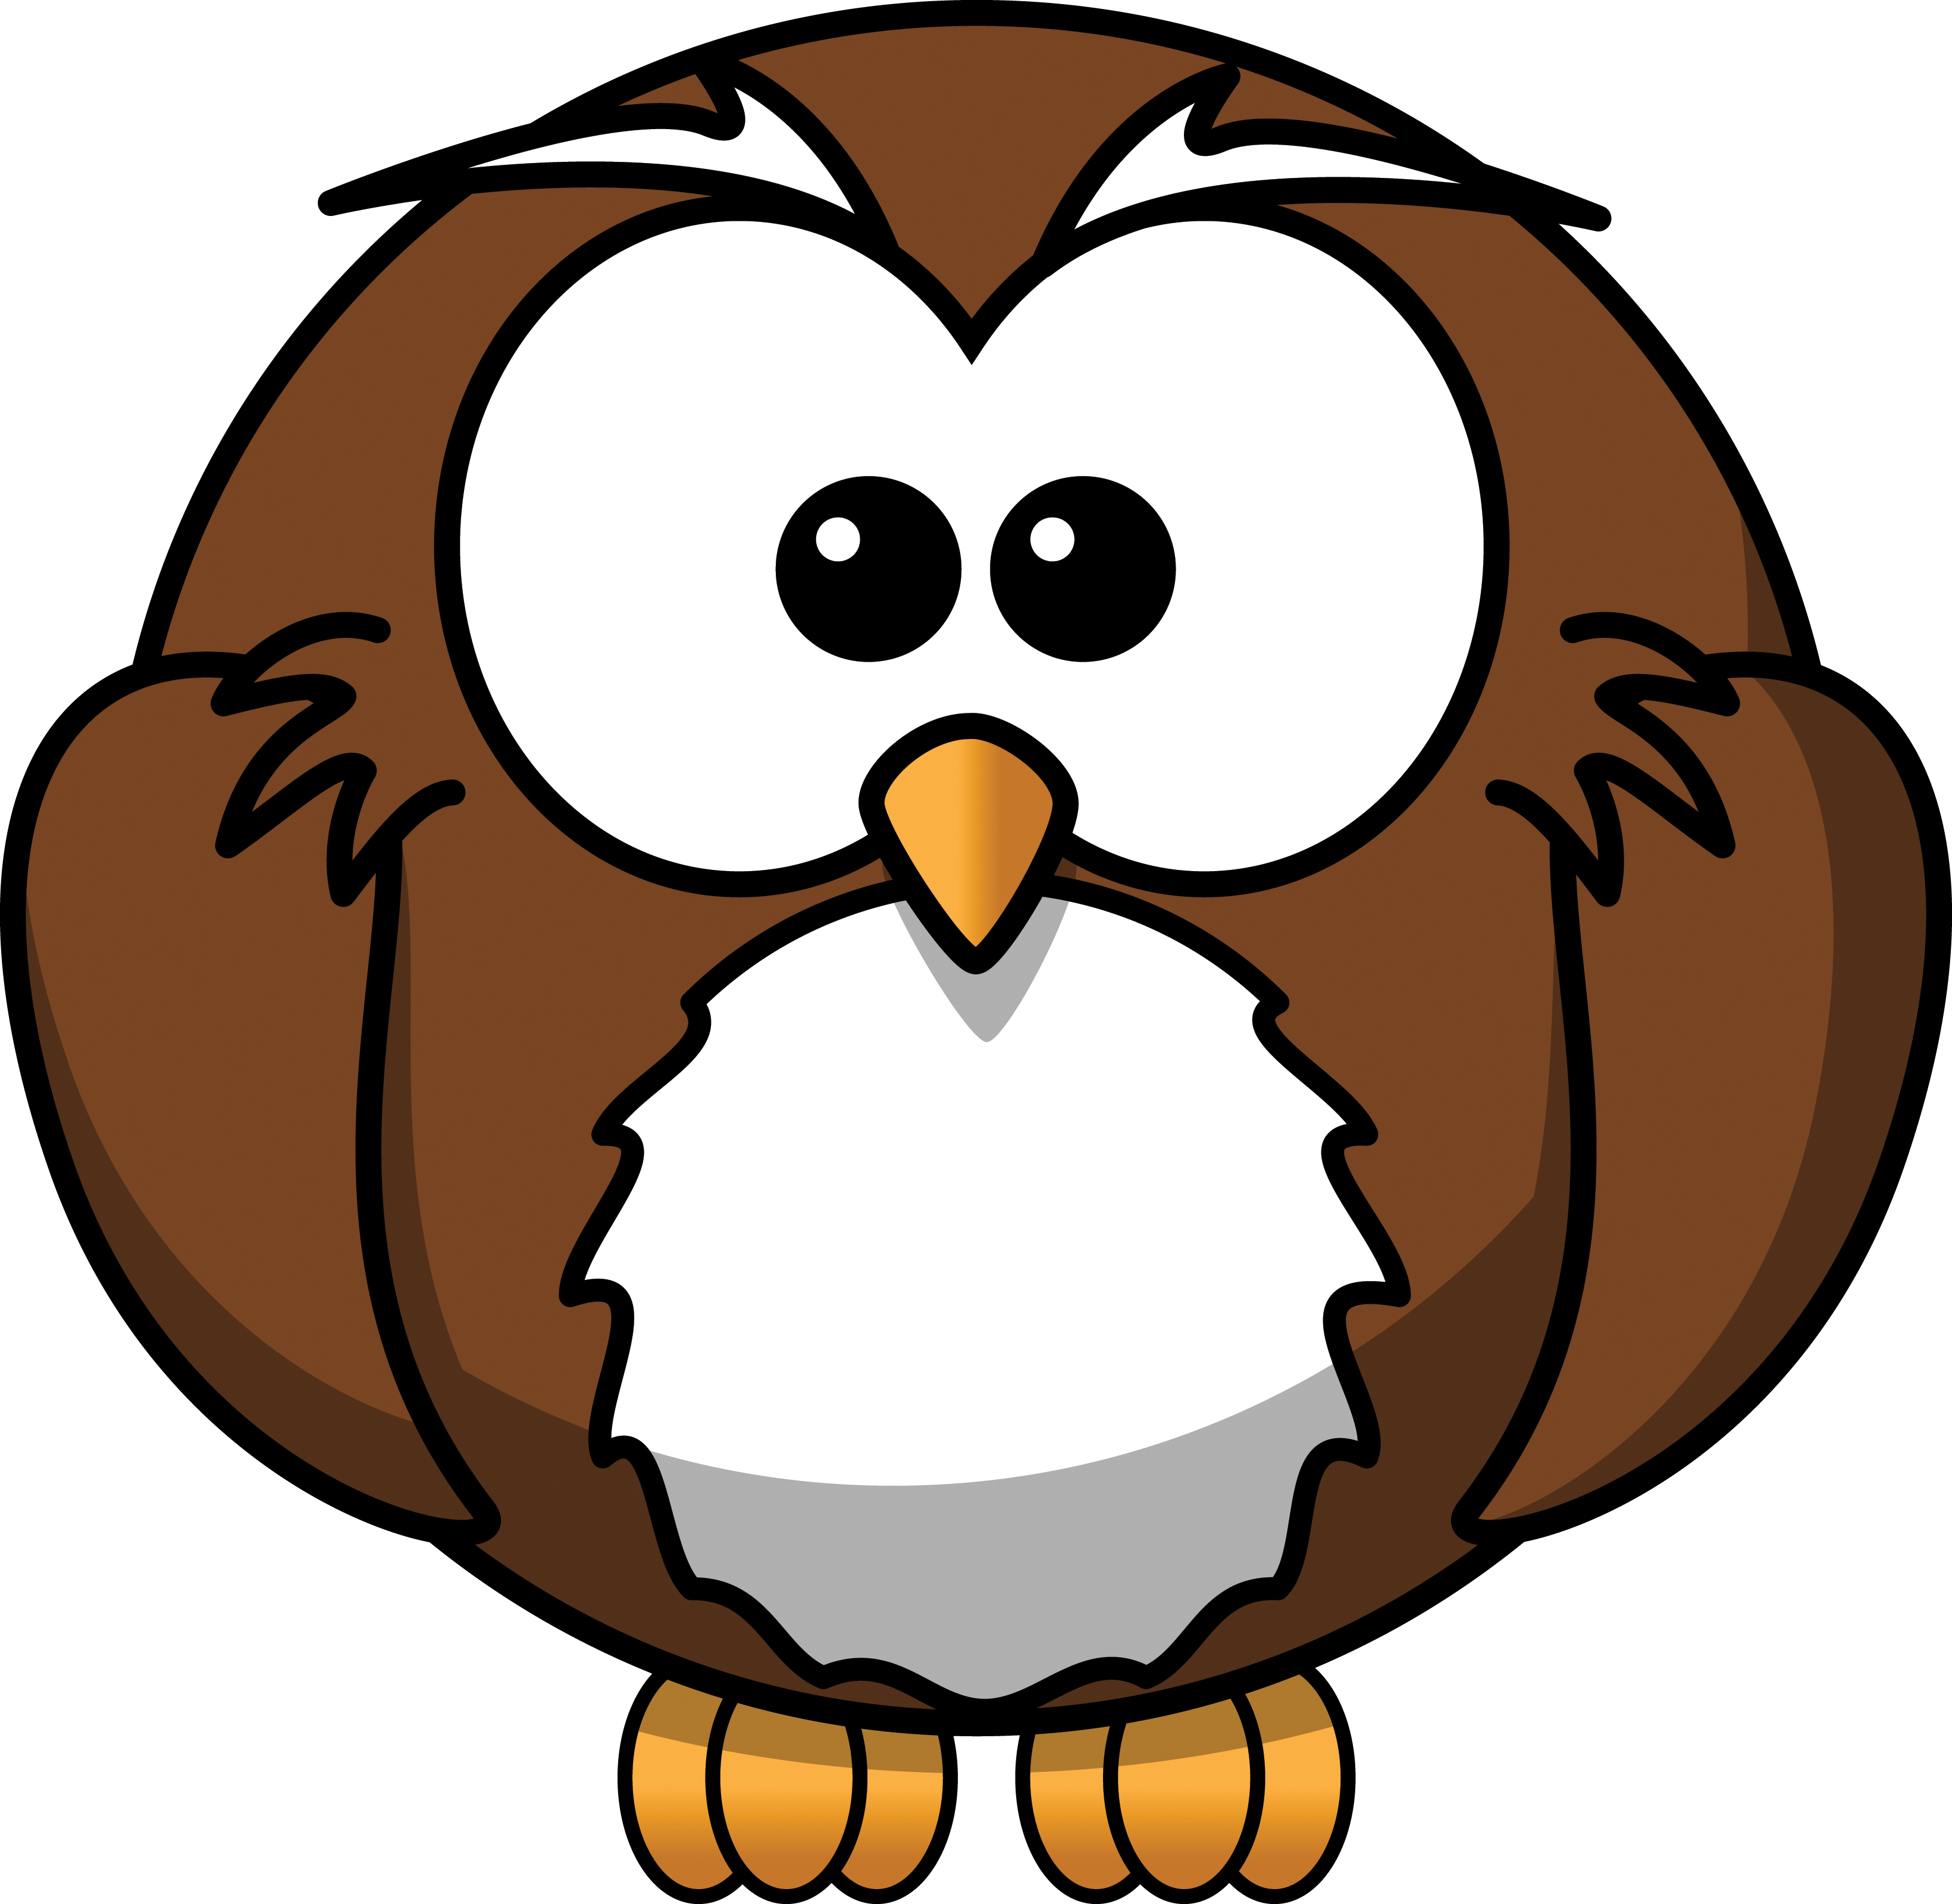 Free Cartoon Owl Clipart By 0001176 .-Free Cartoon Owl Clipart by 0001176 .-6